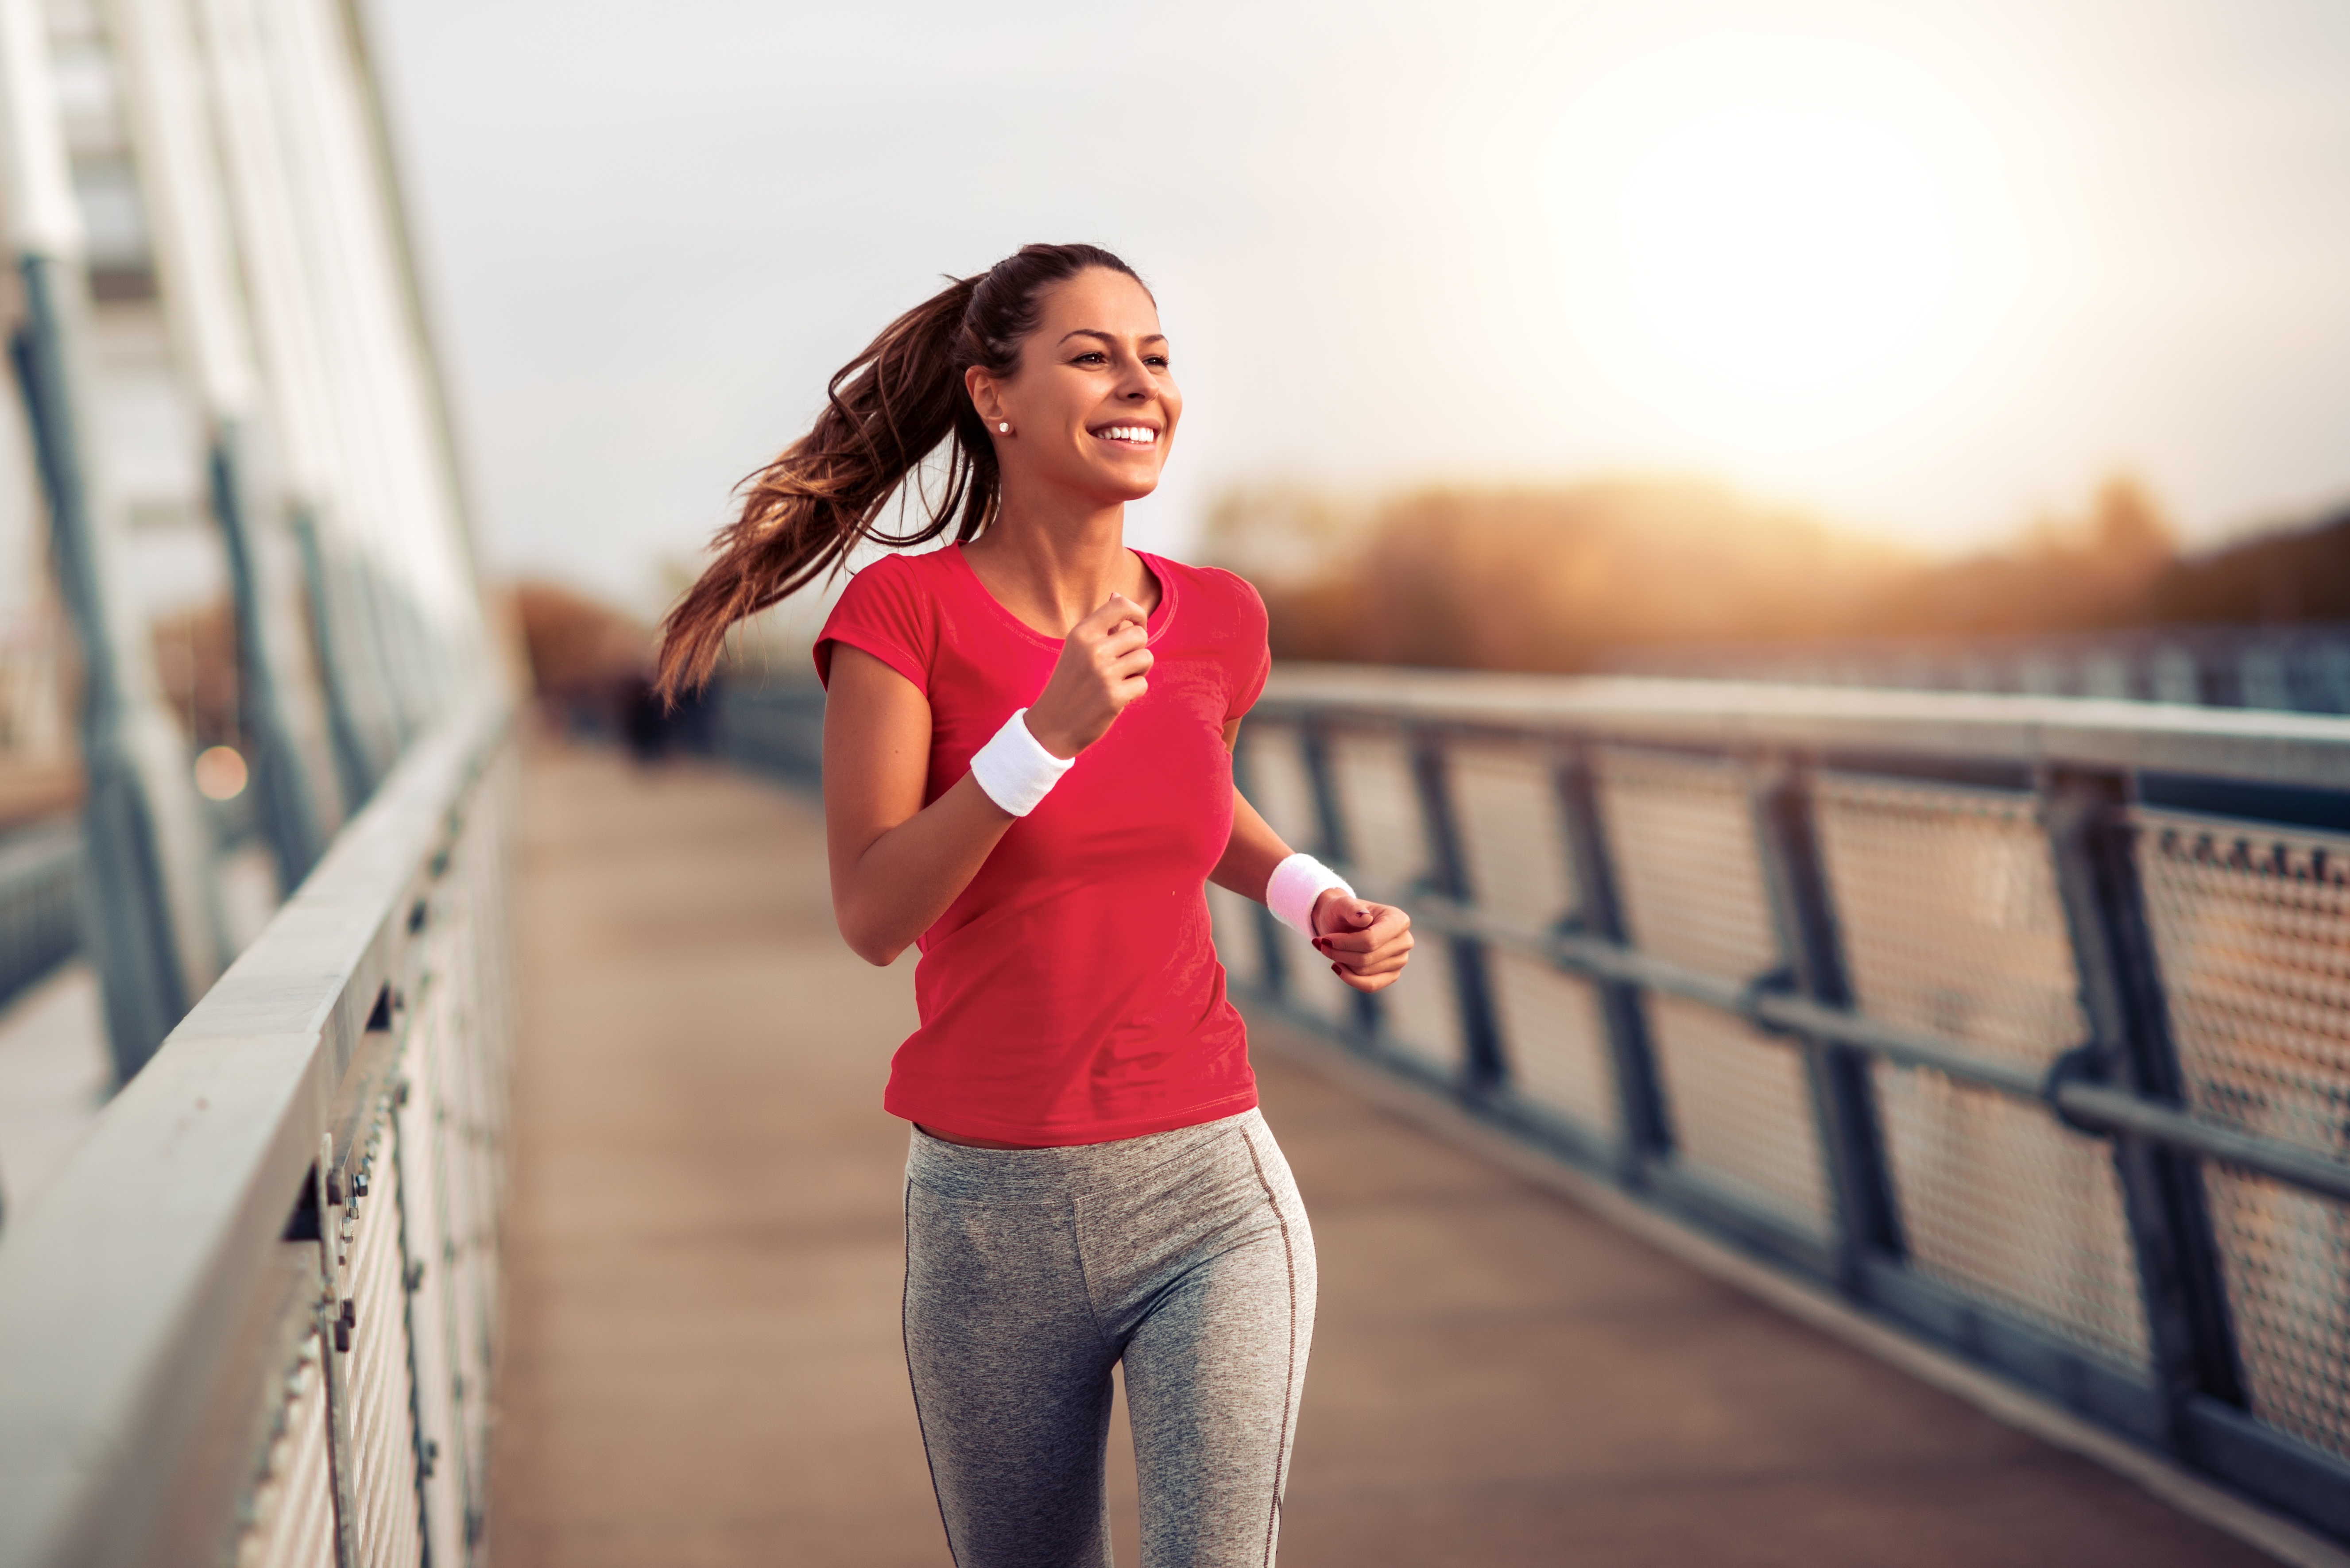 happy woman running excercising on her commute on a bridge by the water